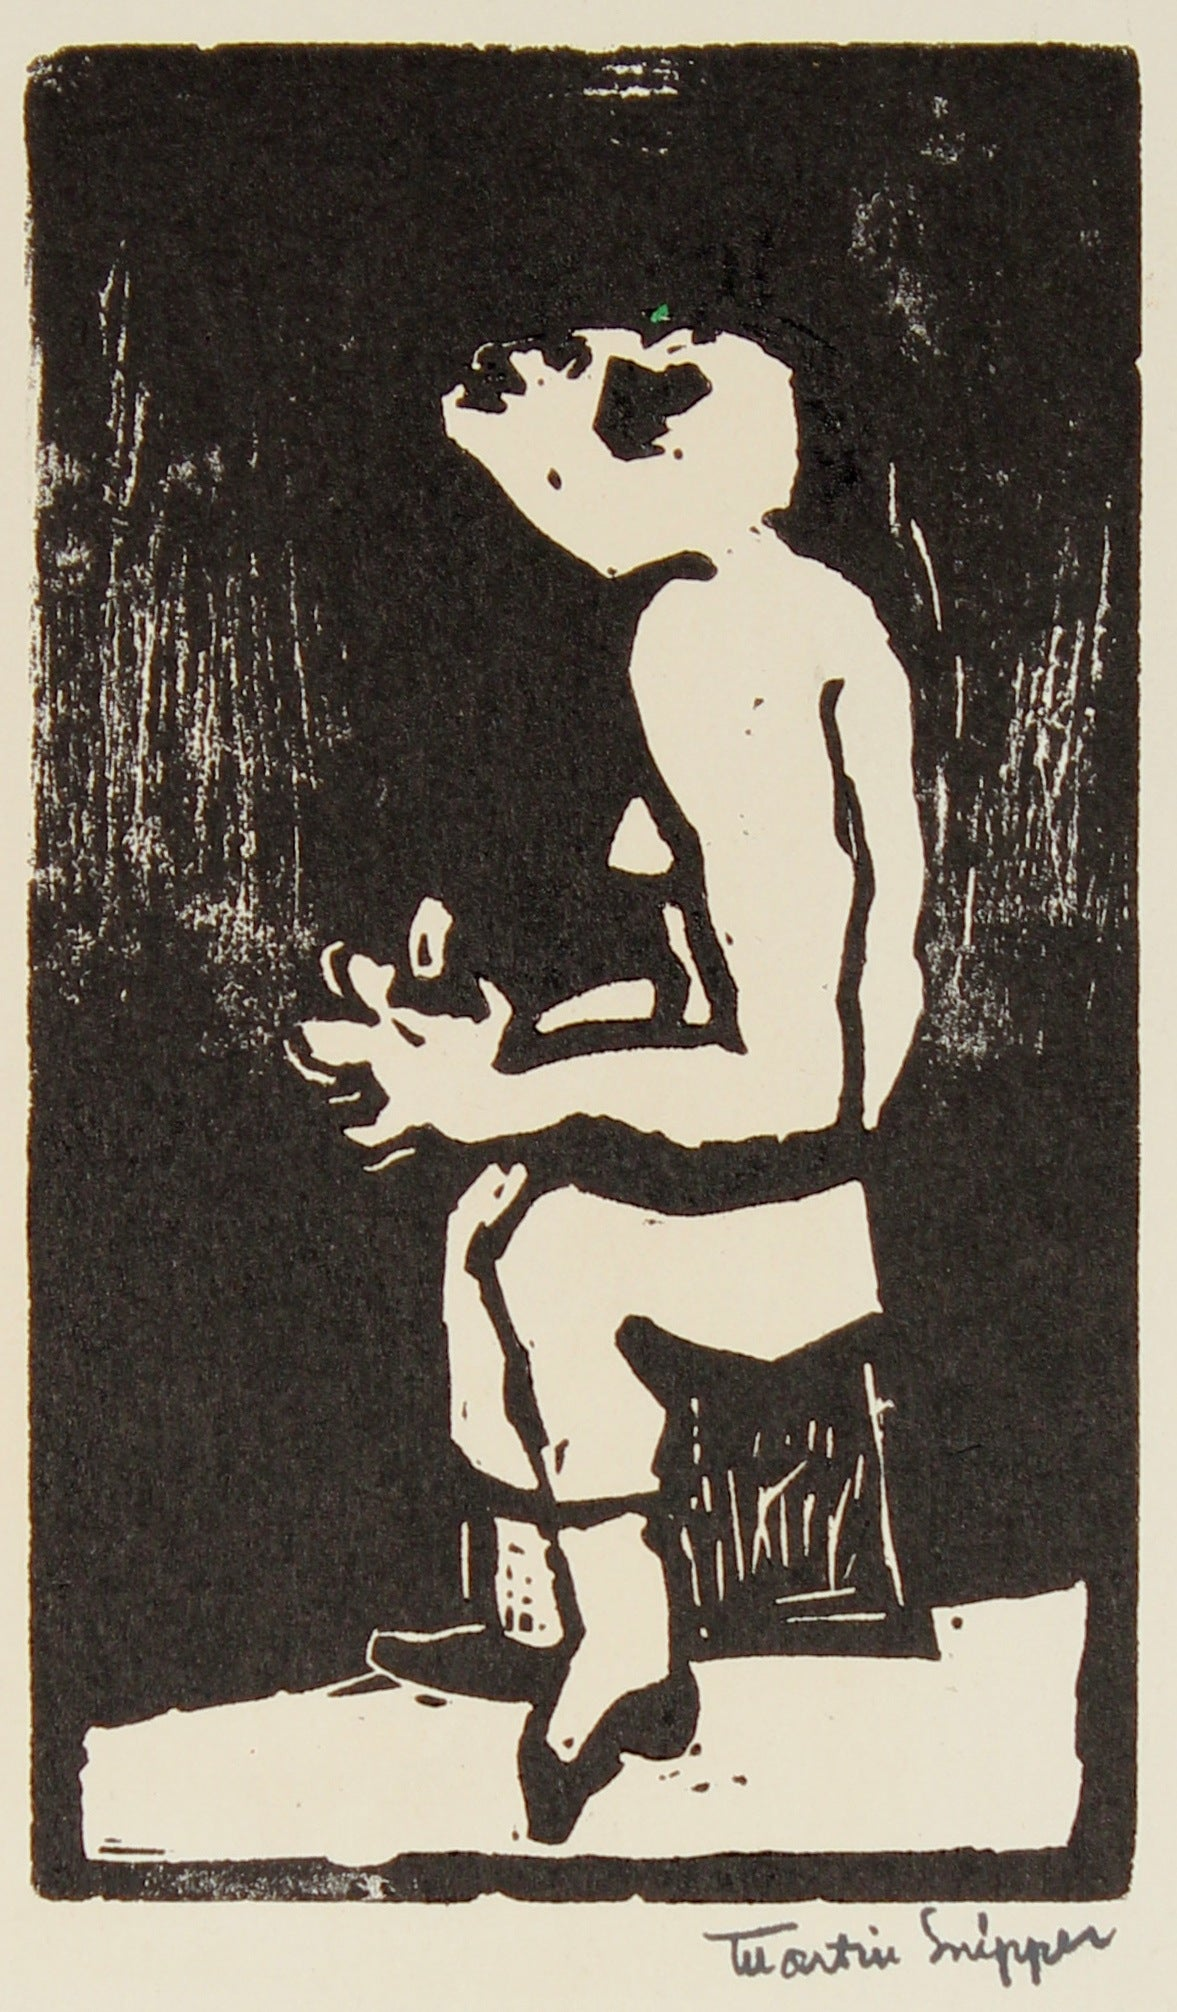 Petite Surreal Figure in Supplication <br>Mid 20th Century Linoleum Block Print <br><br>#48834